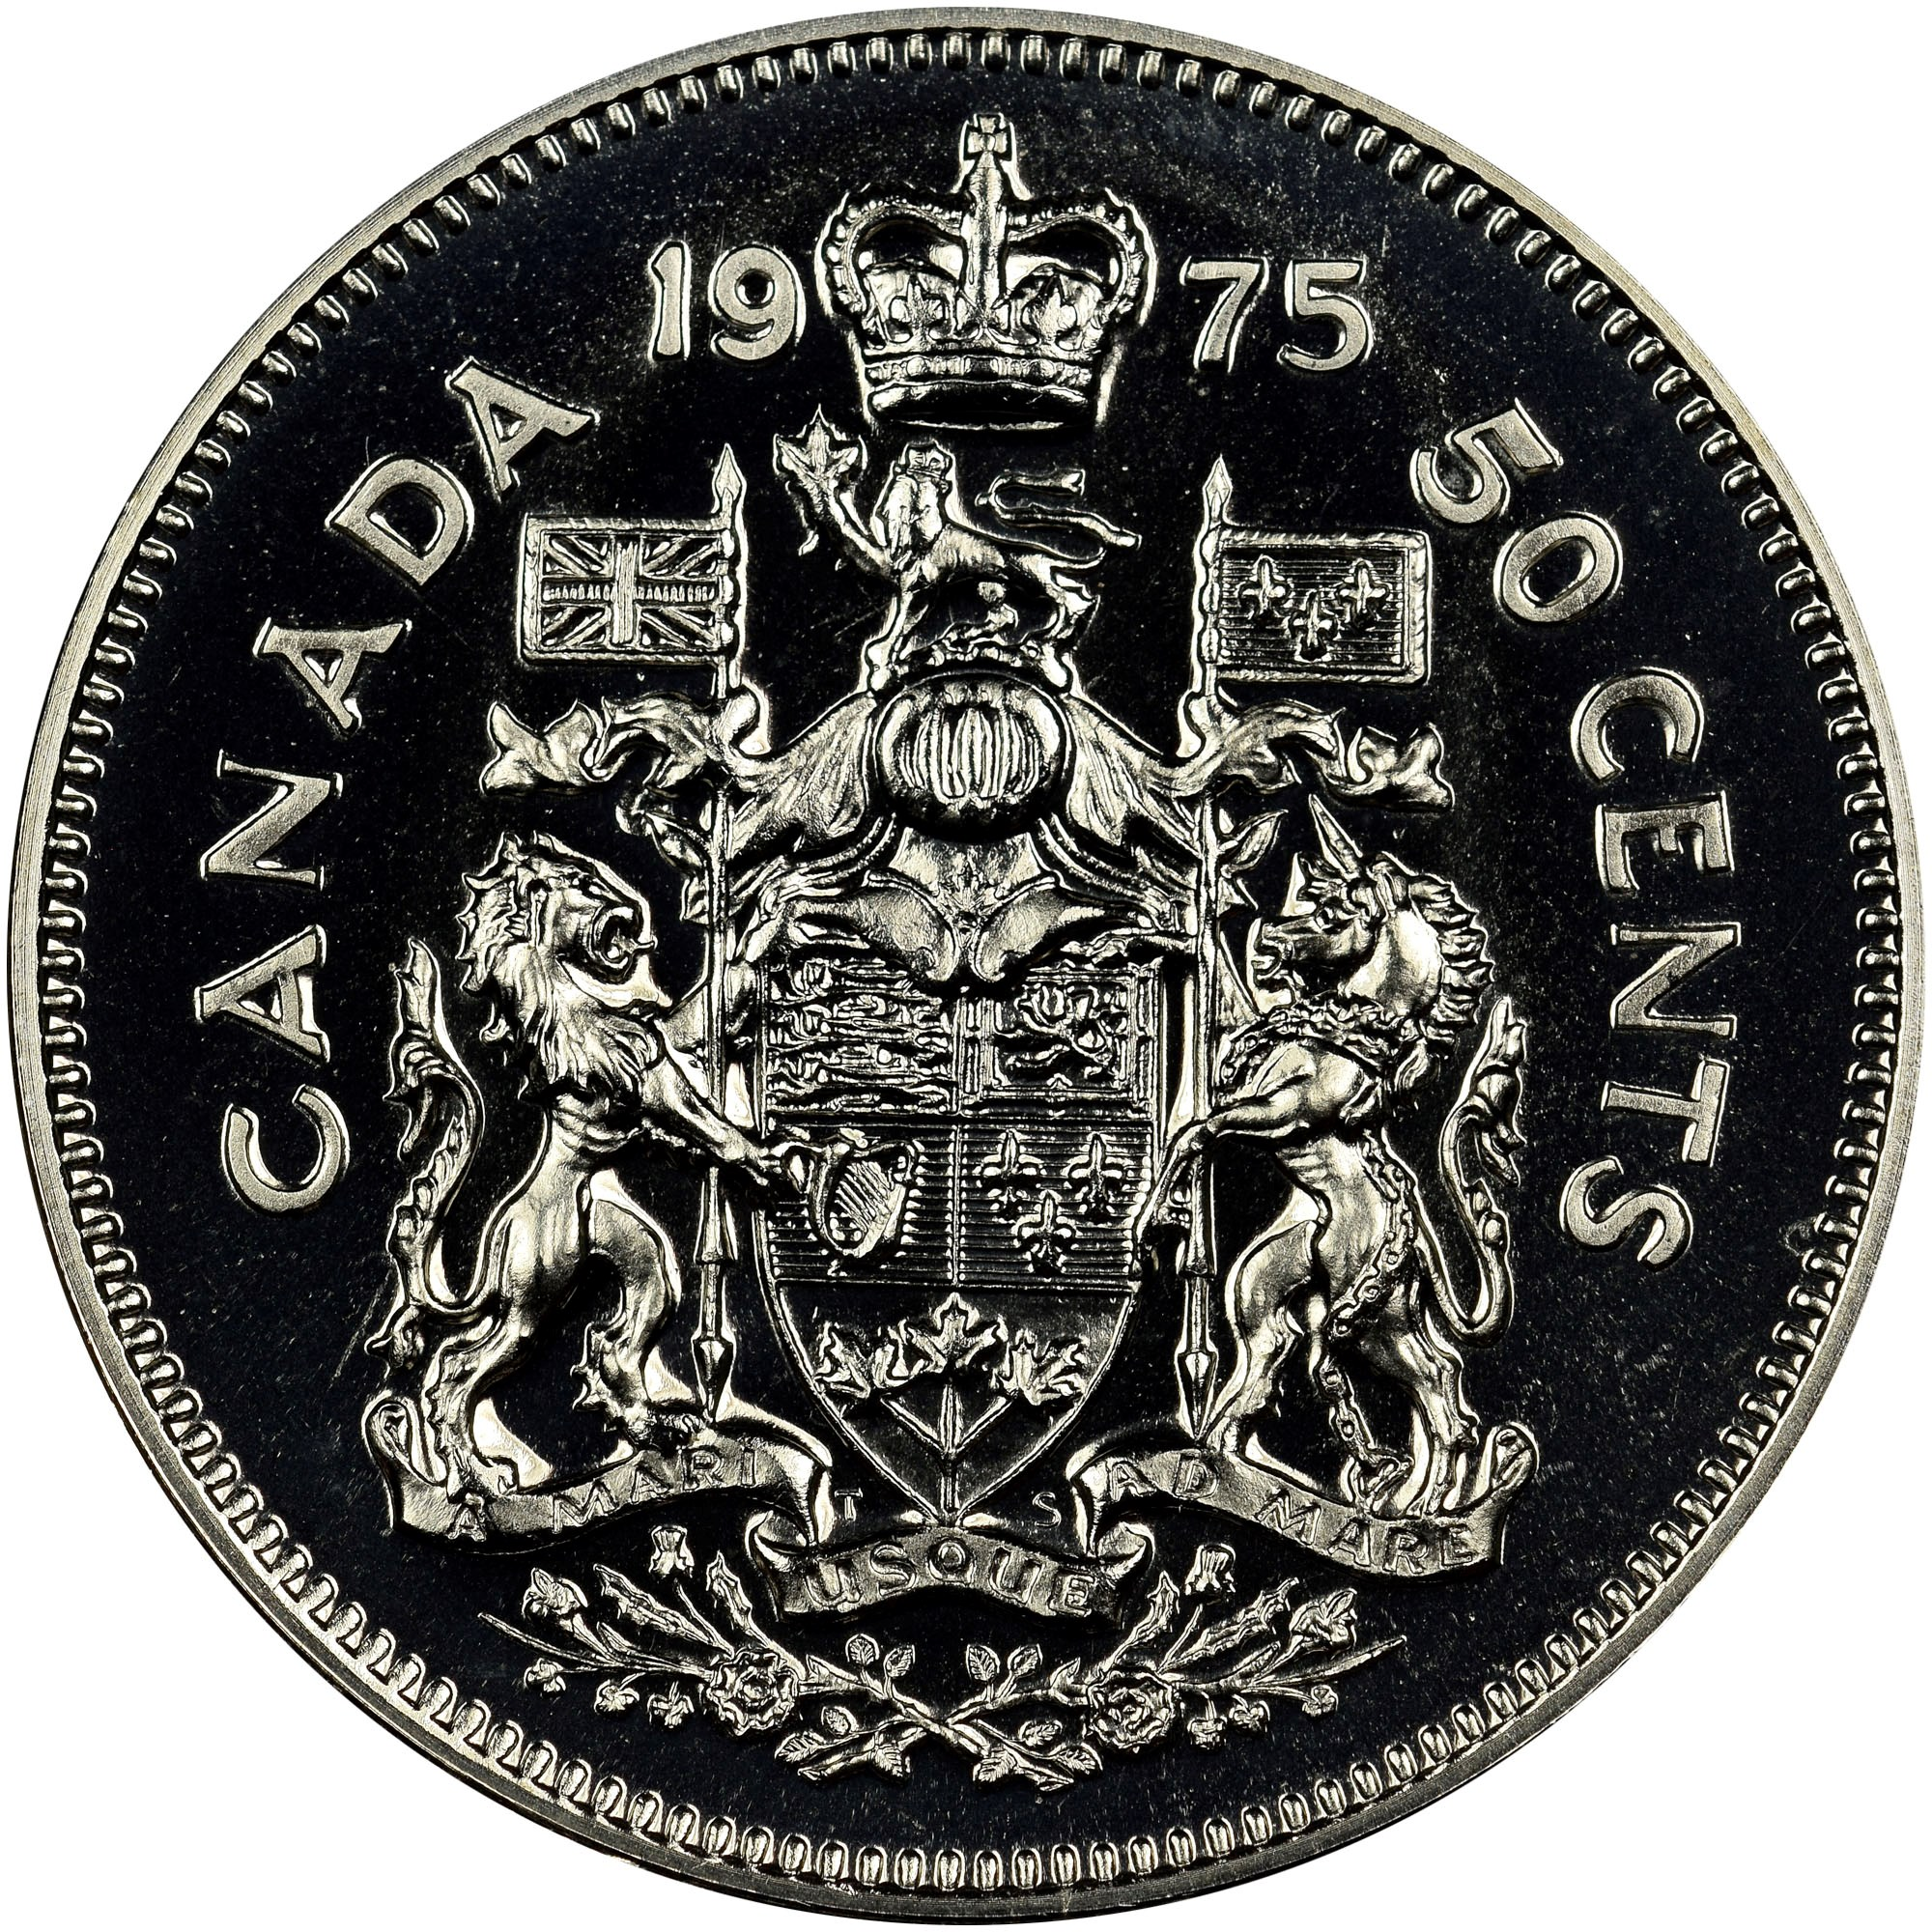 Canada 50 Cents reverse